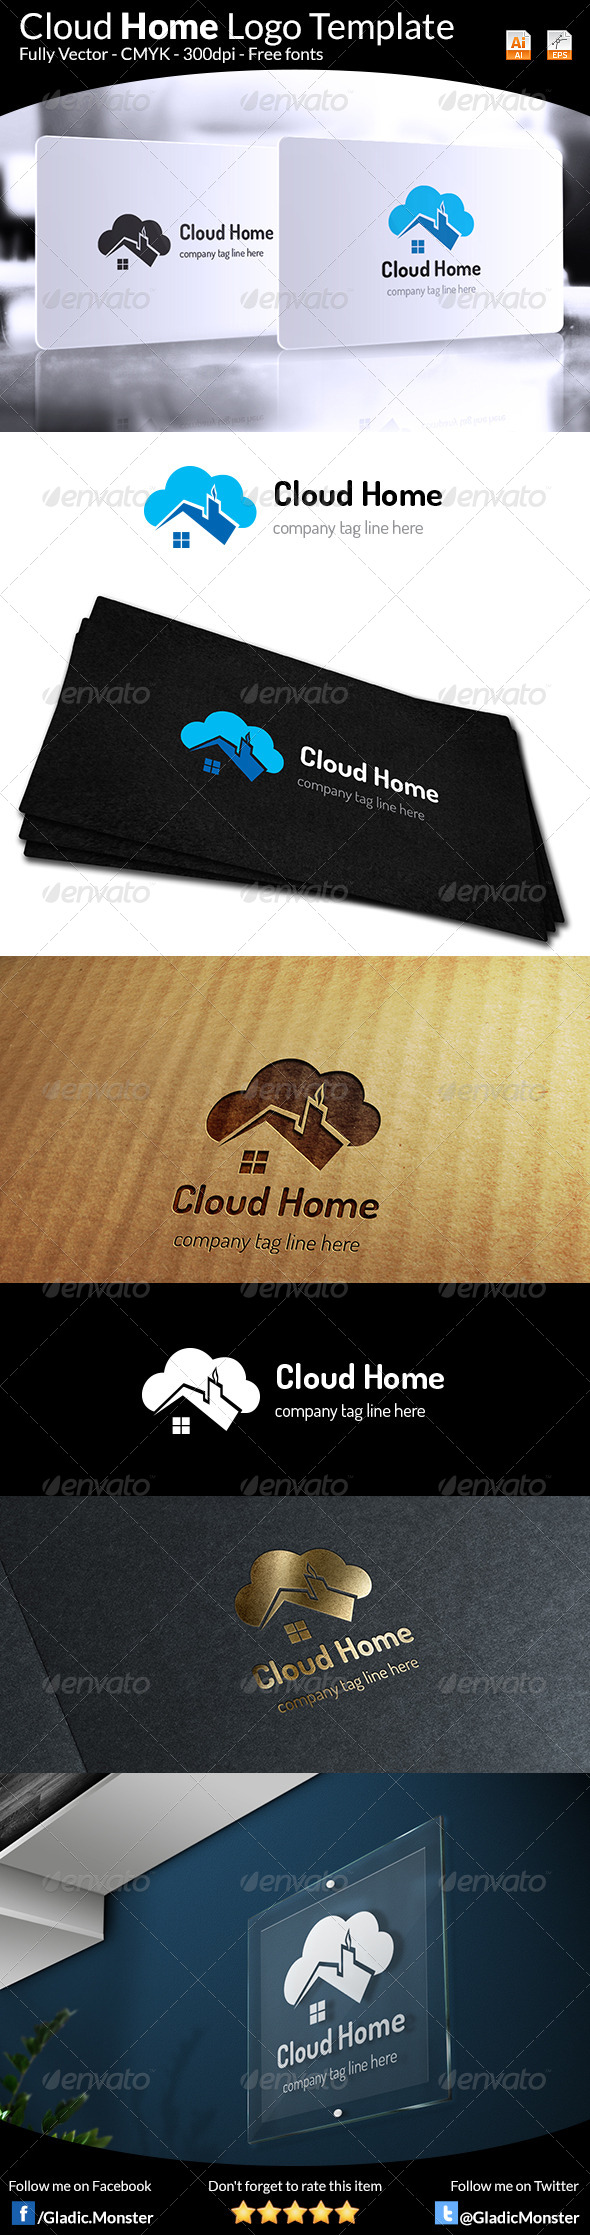 Cloud Home Real Estate Logo